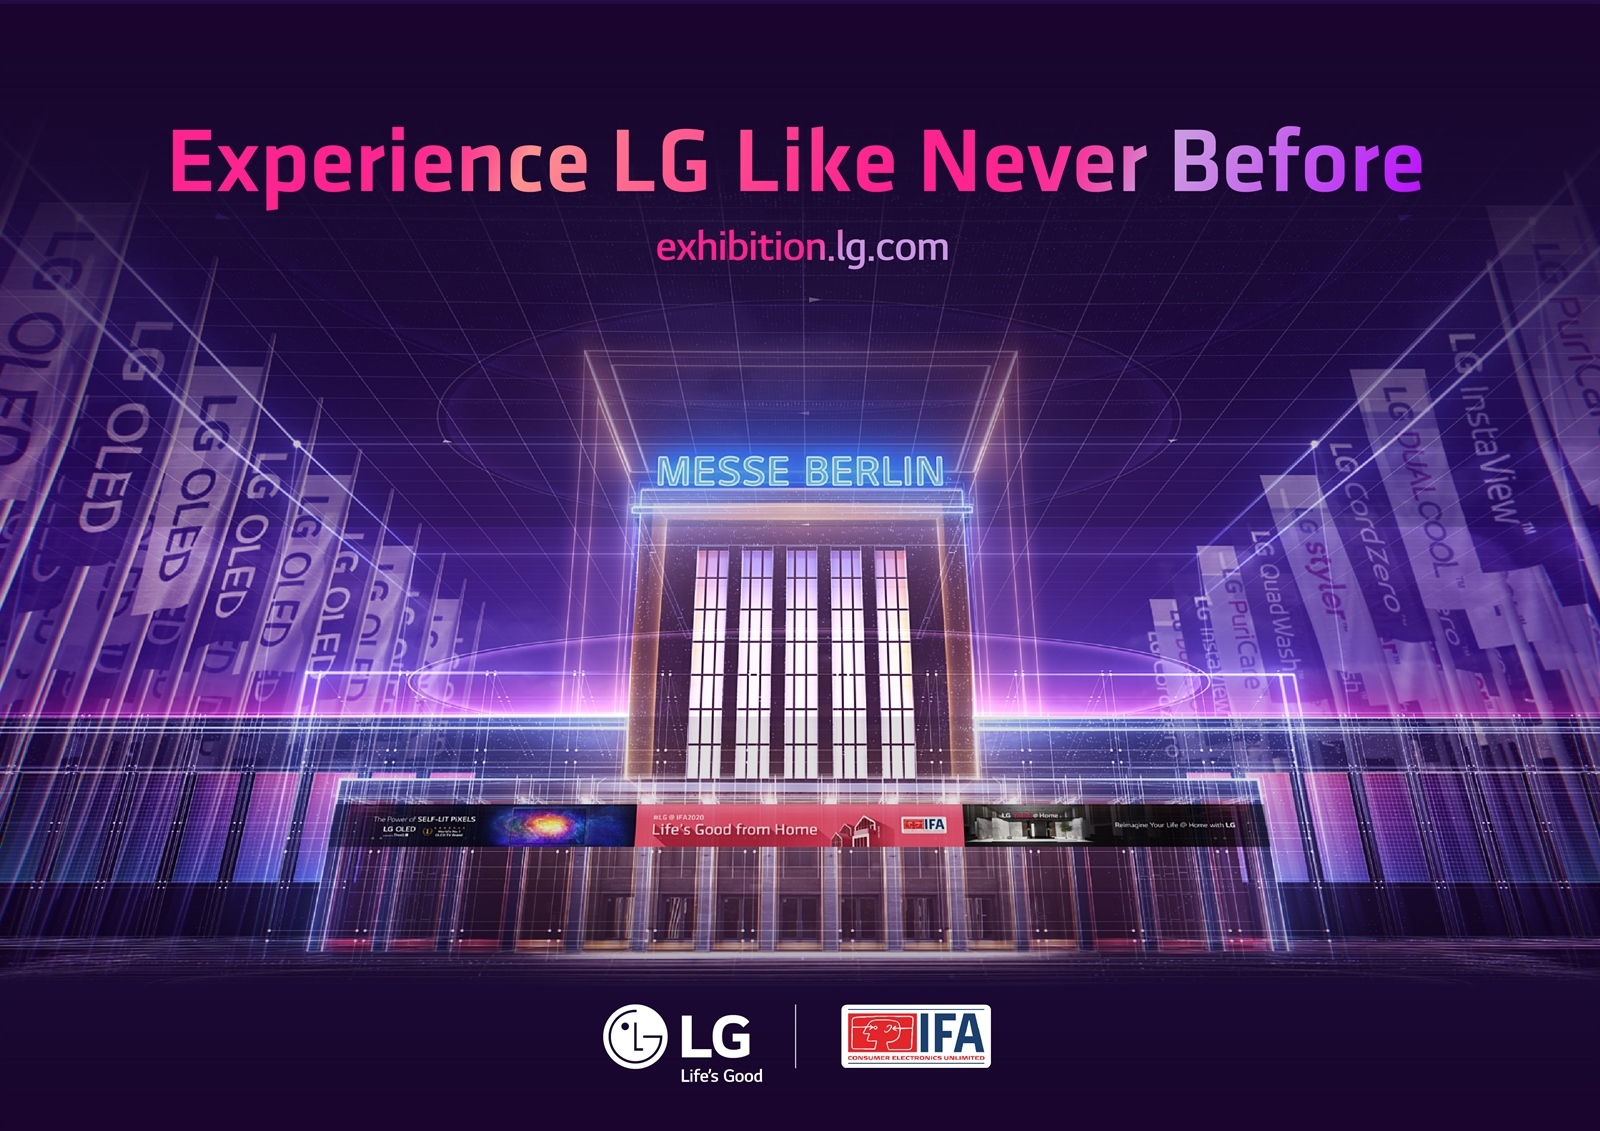 The poster for LG's IFA 2020 information portal with the phrase 'Experience LG Like Never Before' displayed